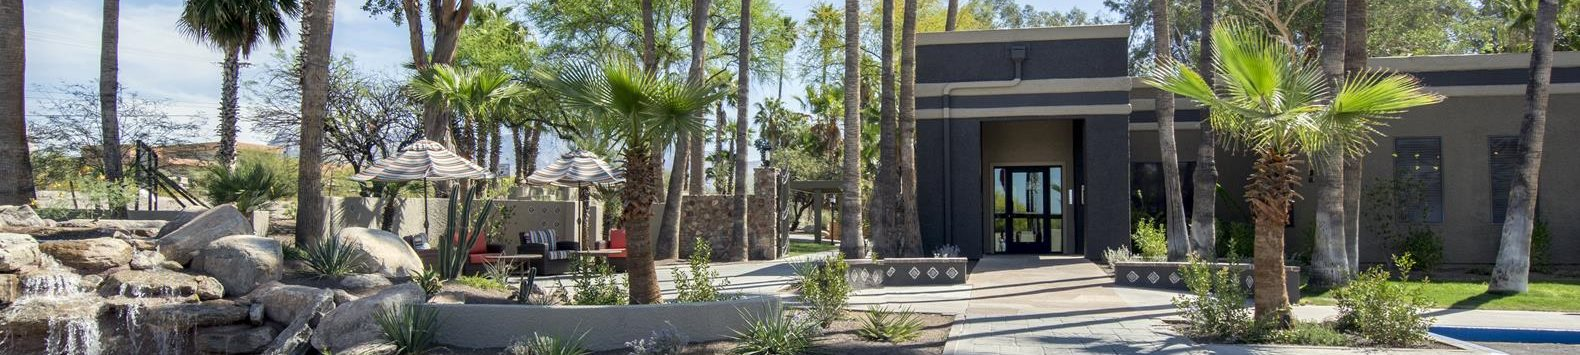 Entrance to Palm Canyon Apartment Homes